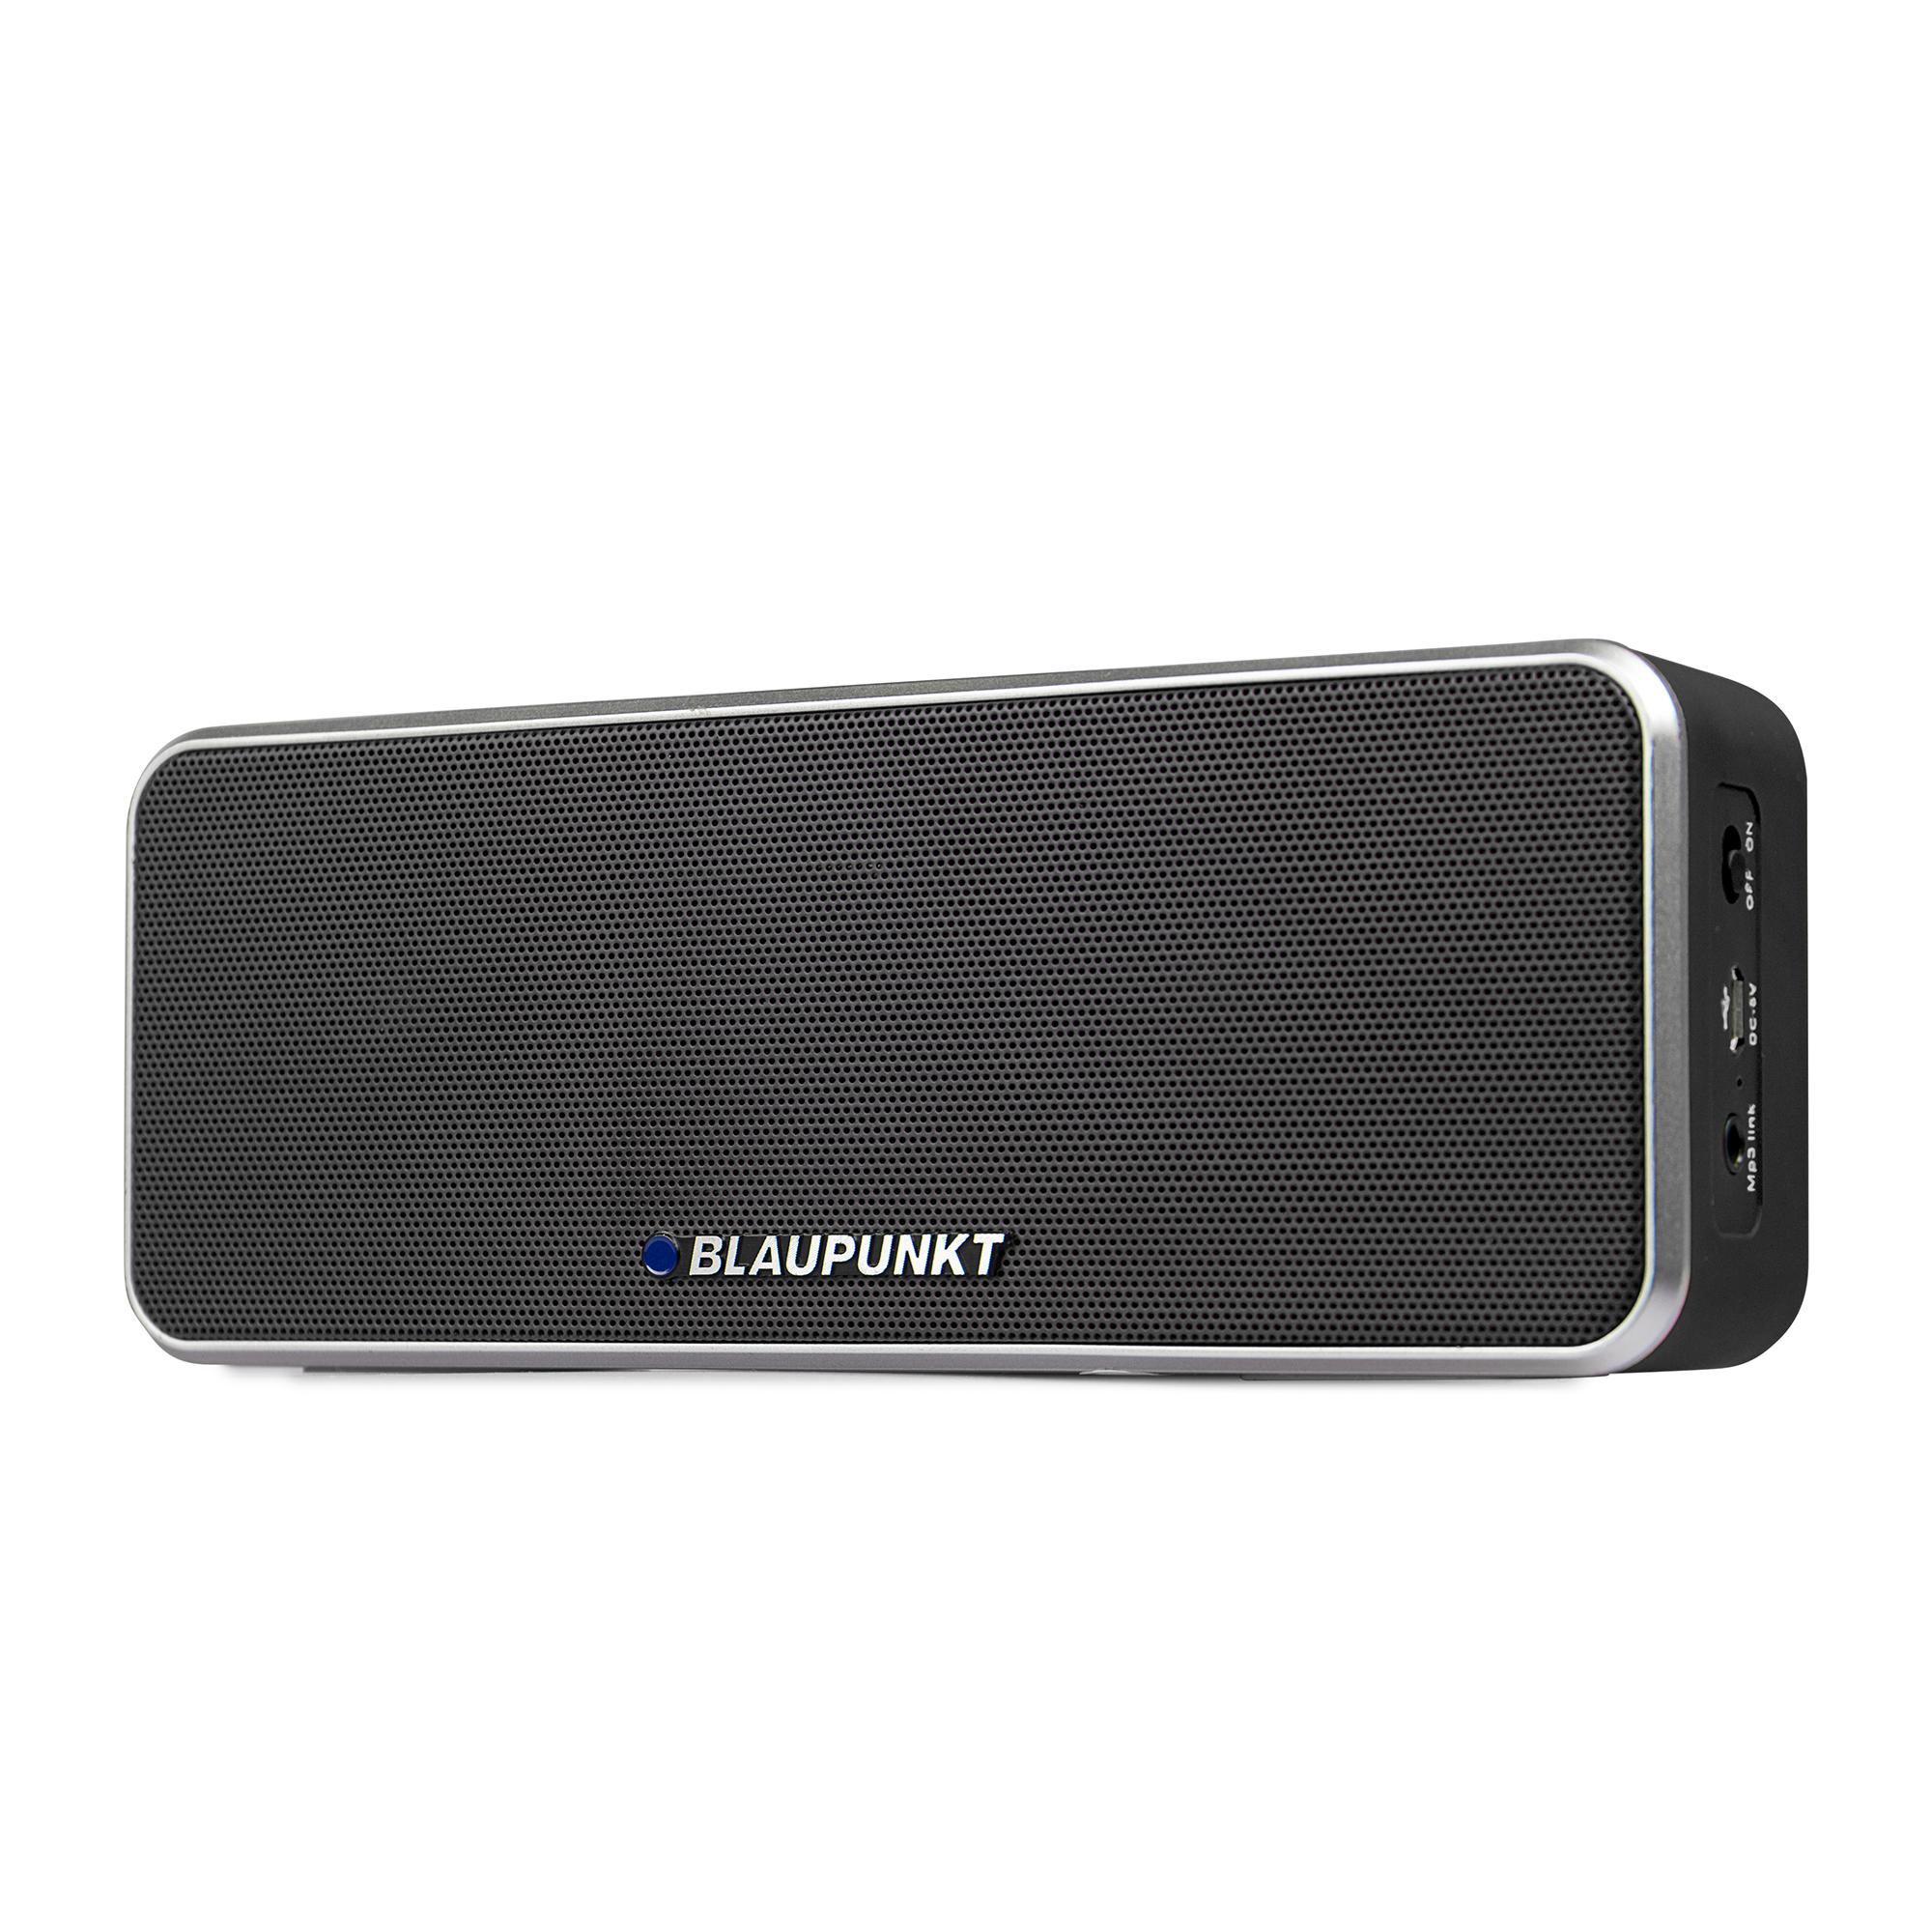 blaupunkt bt 6 bl bluetooth lautsprecher mit mikrofon freisprecheinrichtung eingebauter akku. Black Bedroom Furniture Sets. Home Design Ideas